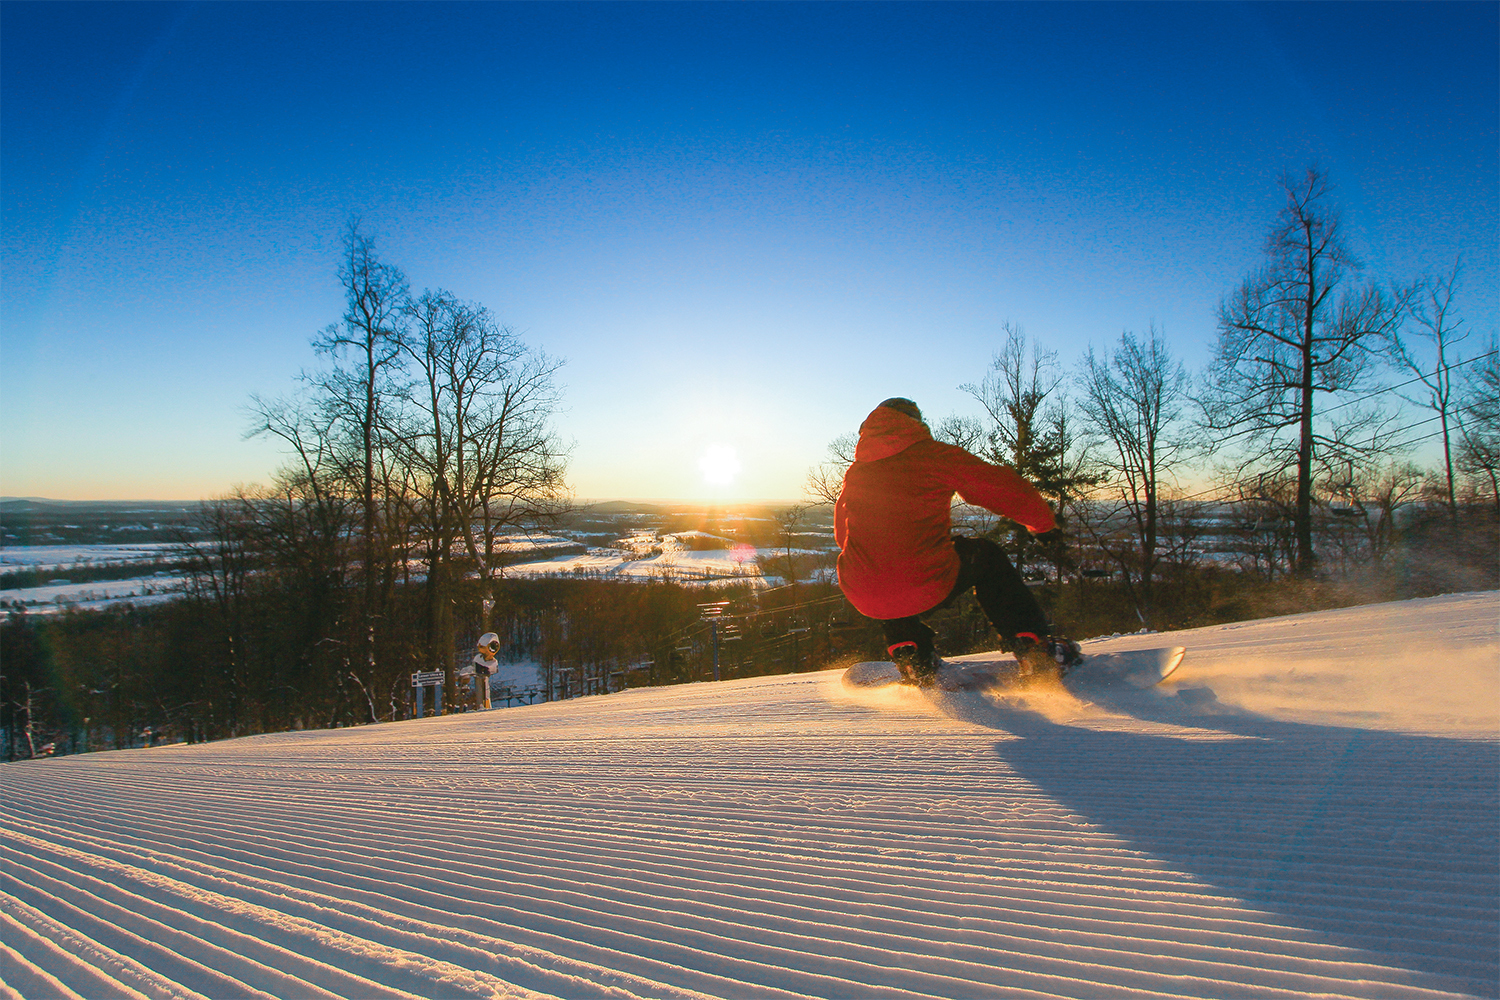 Snowboarder at sunset.